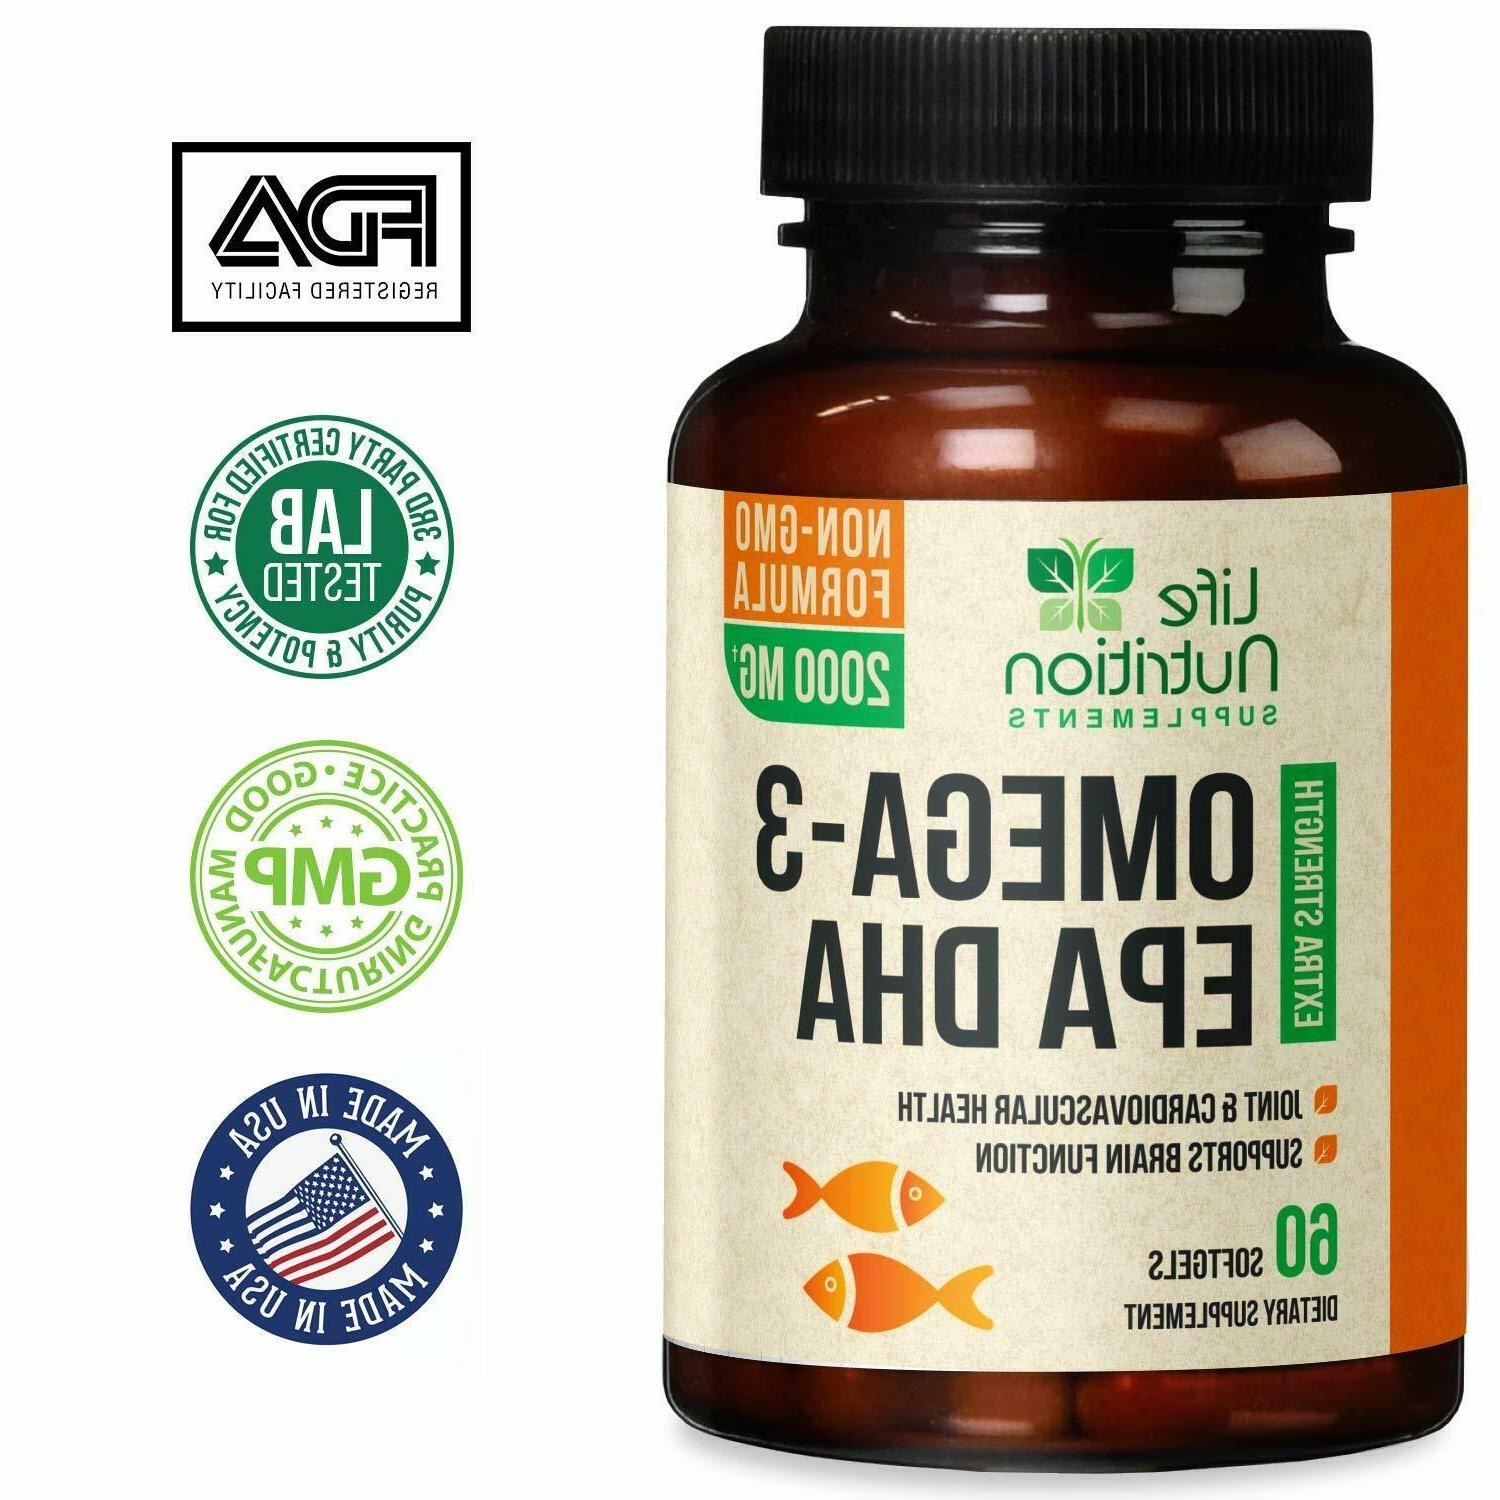 Omega 3 Capsules Triple Strength 2000mg EPA & DHA - 60